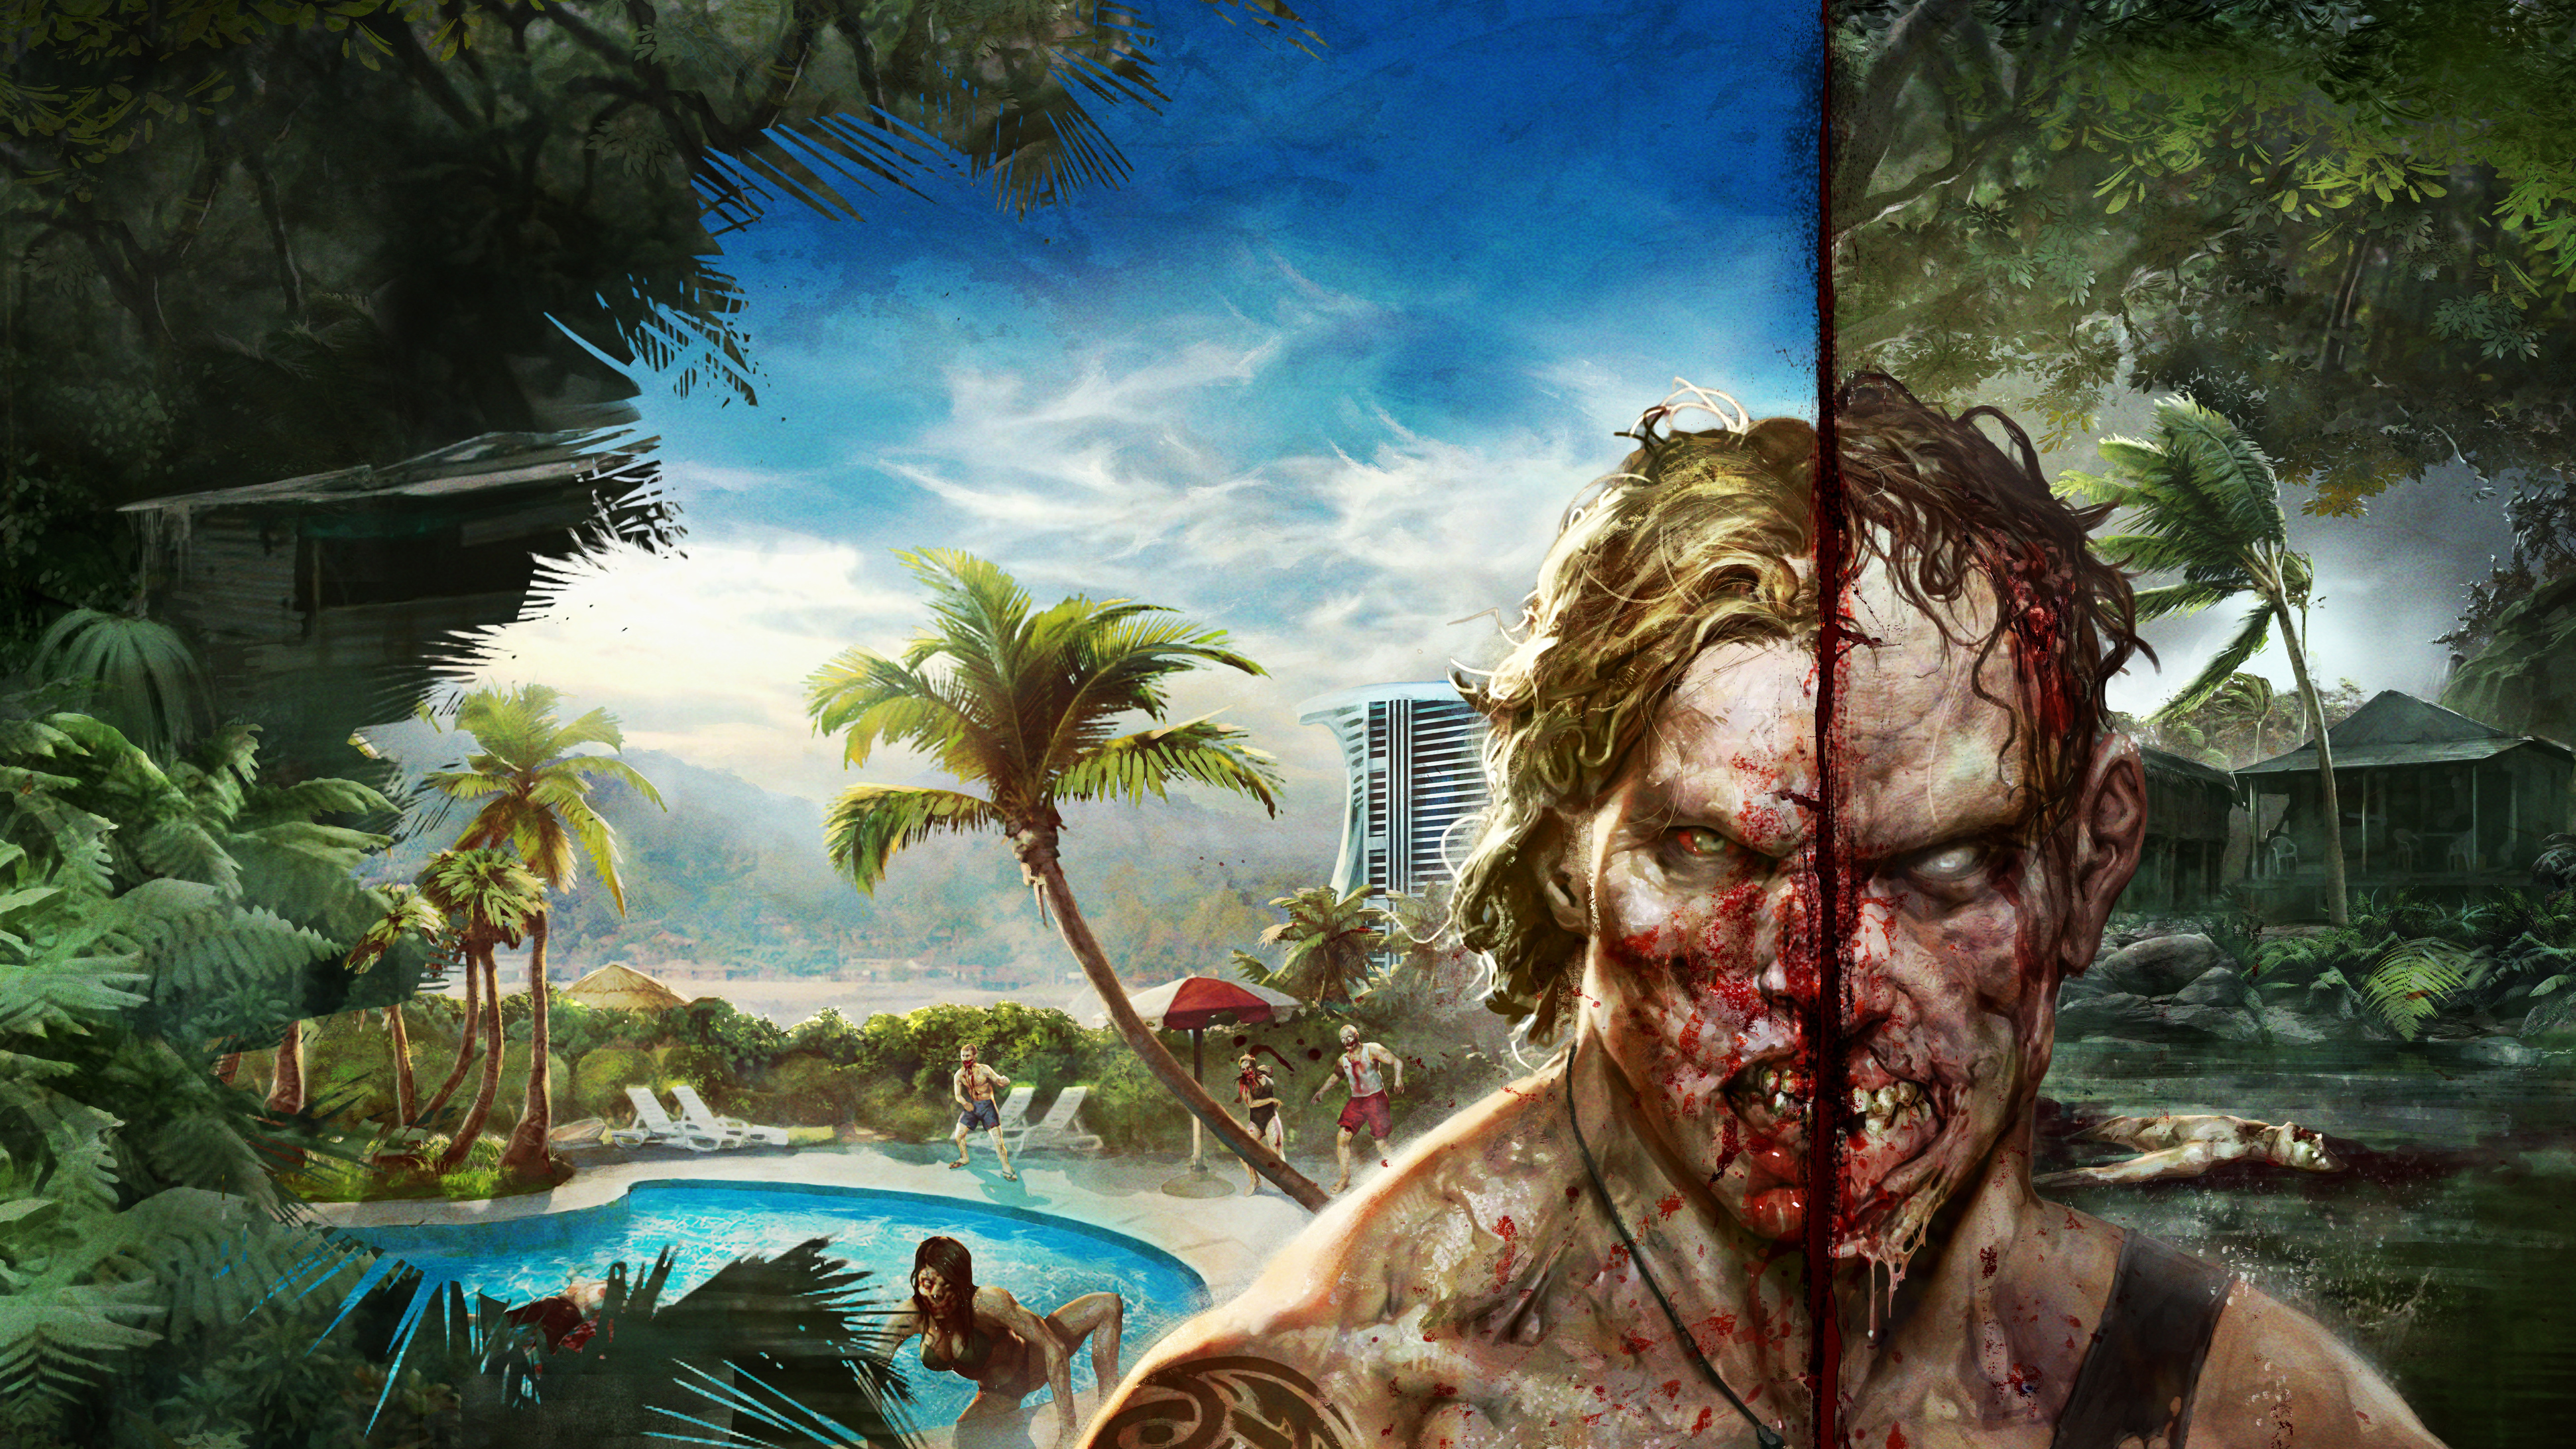 Dead Island HD Games 4k Wallpapers Images Backgrounds Photos